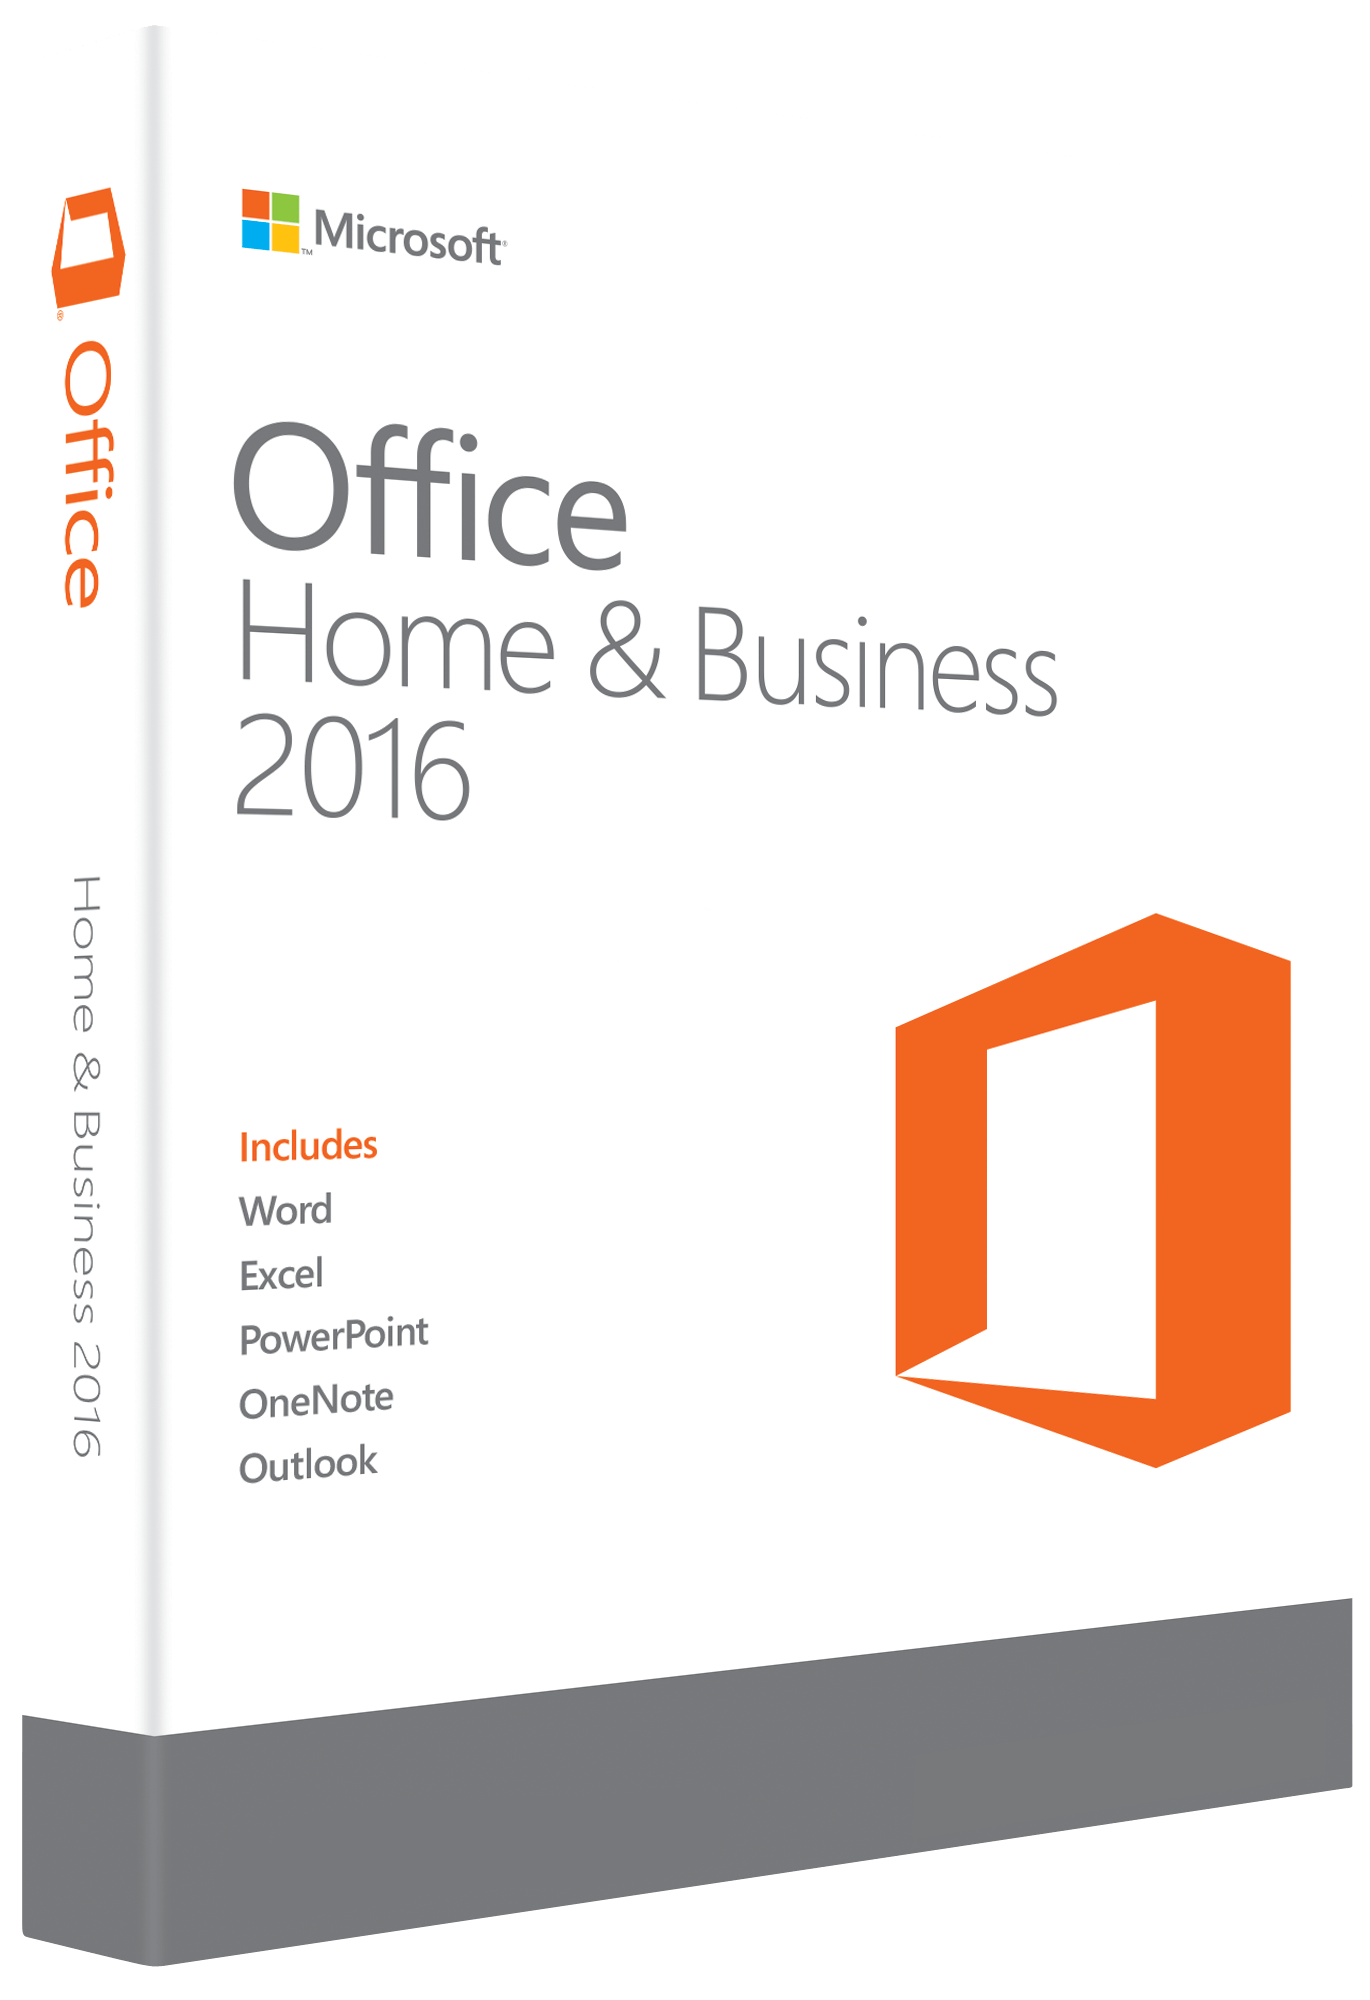 Microsoft Office Home and Business 2016 - Software-Markt data-zoom=